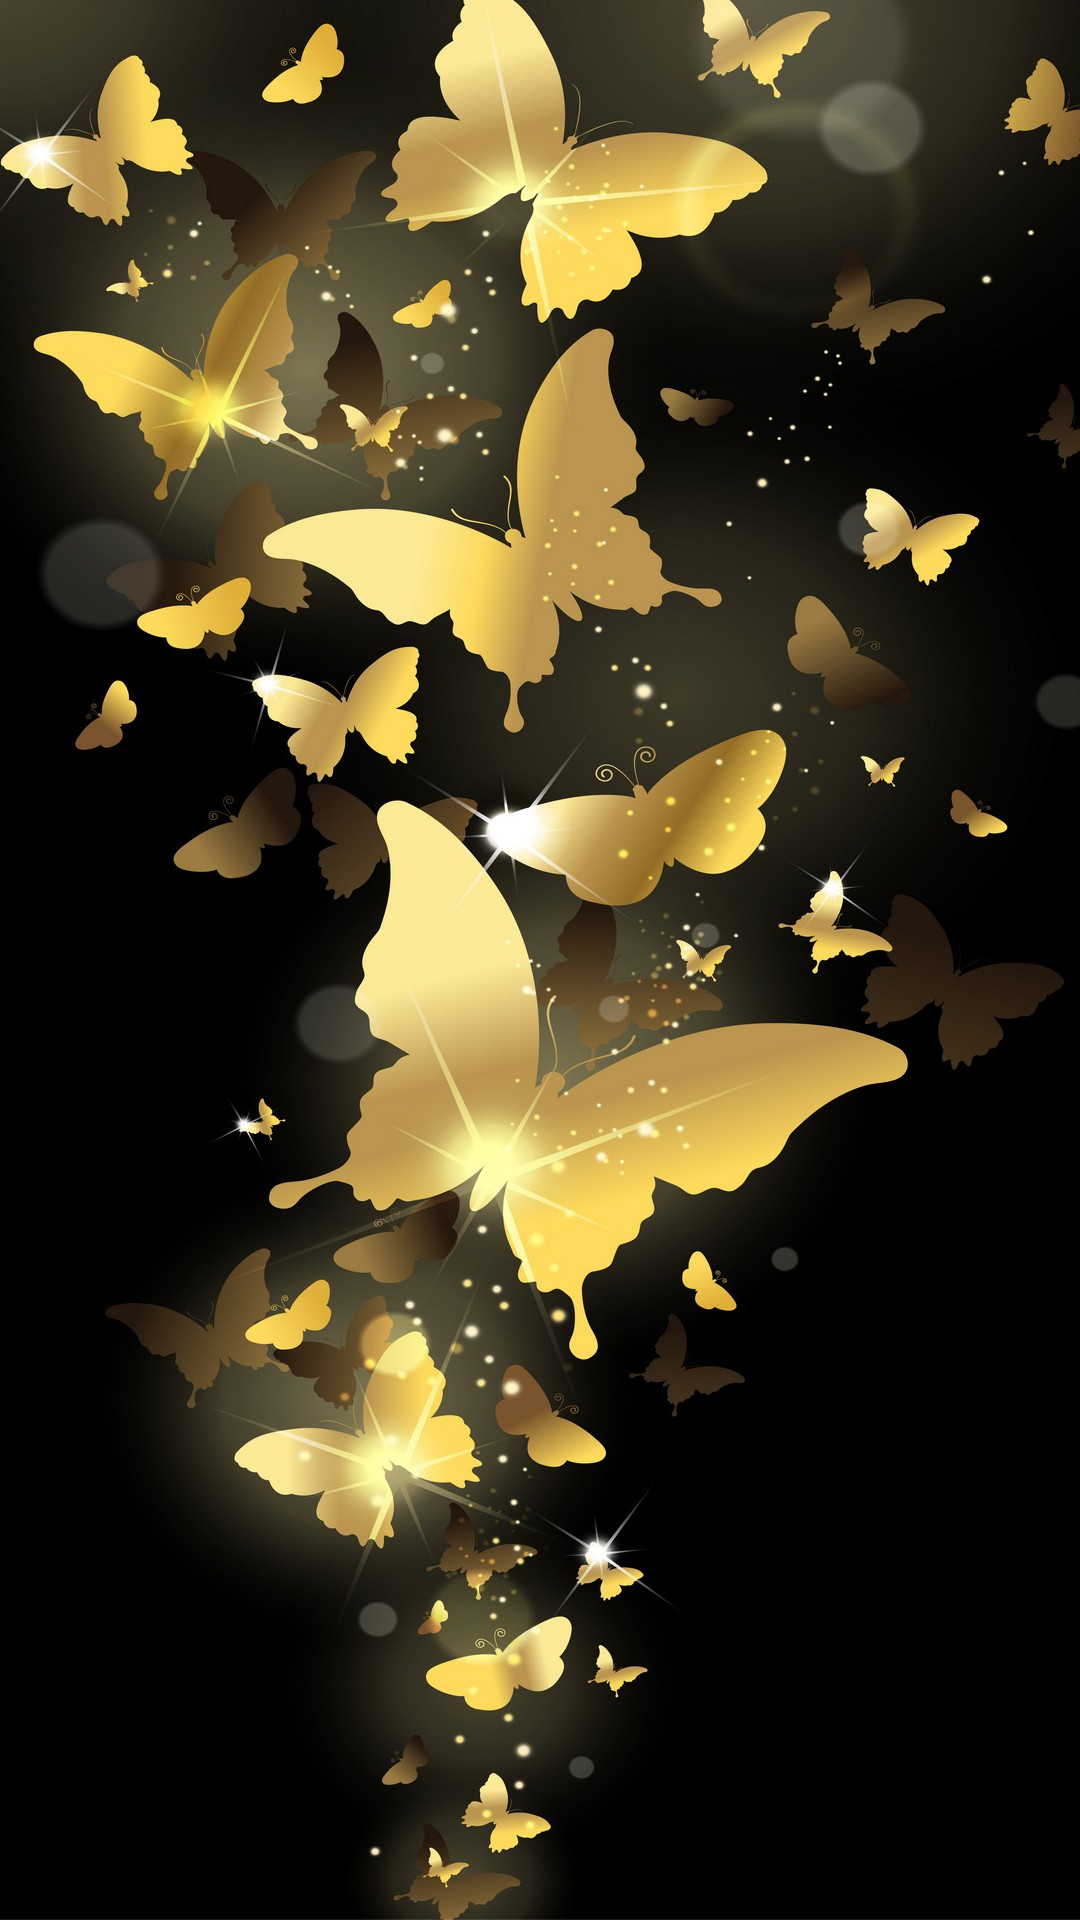 Flying Golden Butterflies Lockscreen Iphone 6 Plus Hd